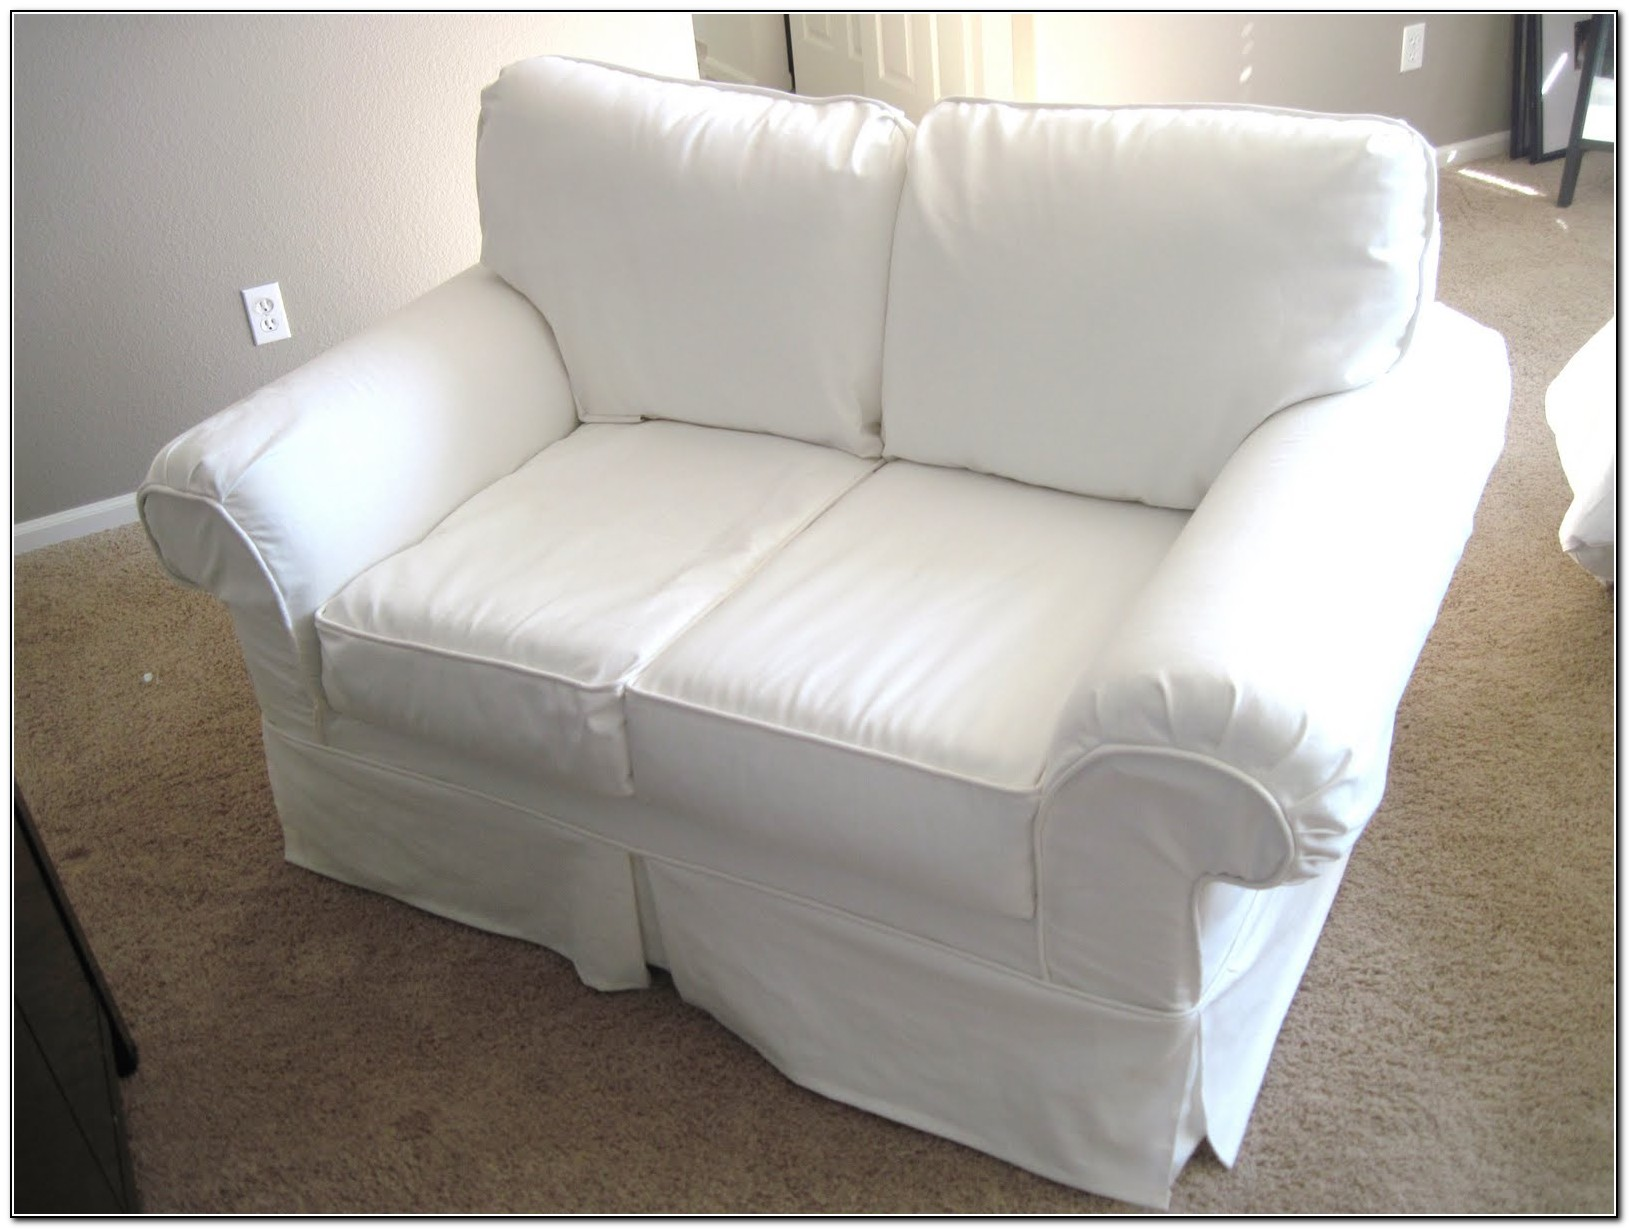 sofa u love slipcovers simmons beautyrest reviews diy sectional download page  home design